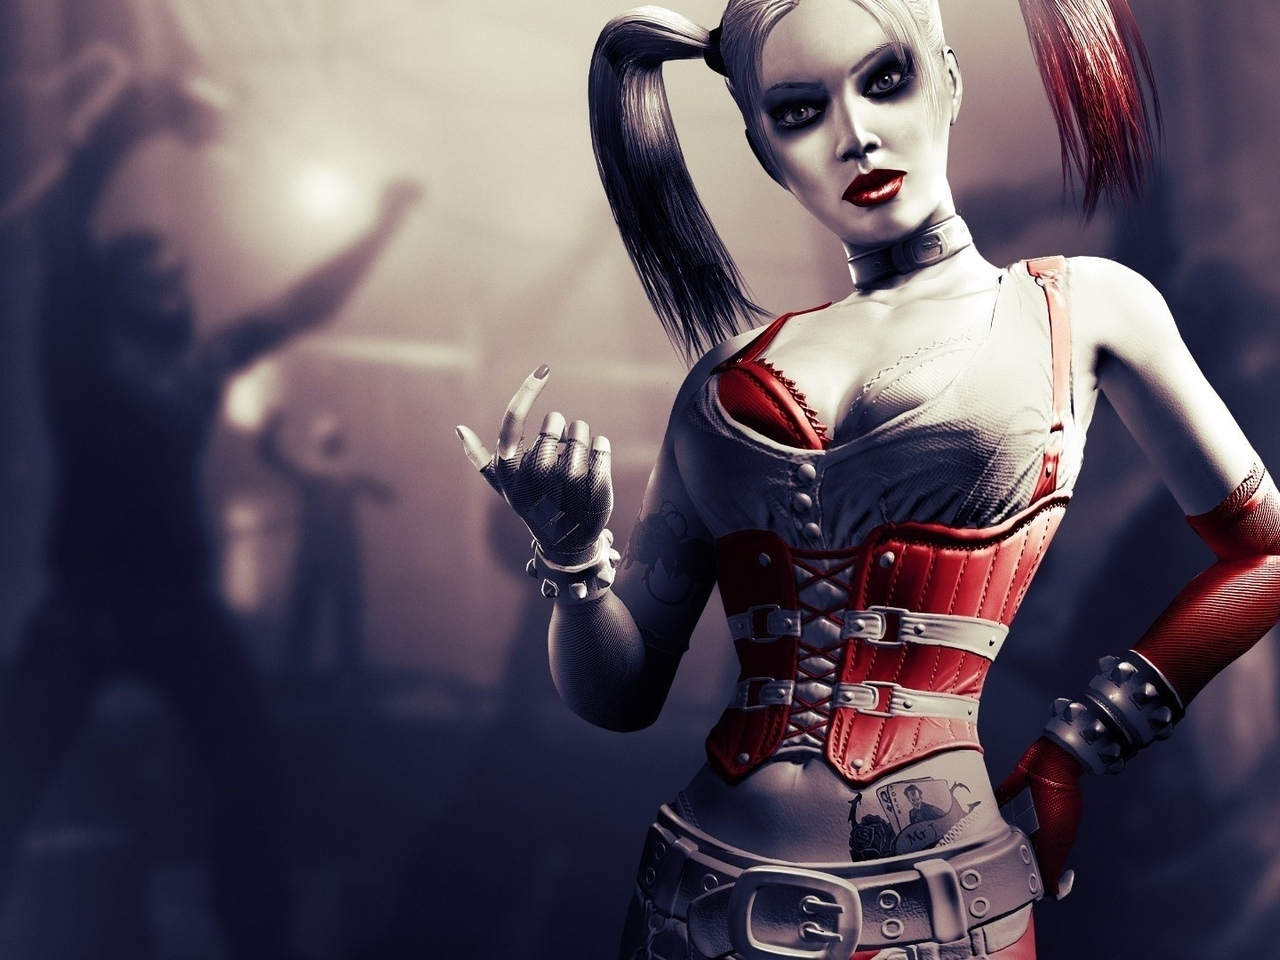 harley quinn, Харли квинн, batman, arkham city